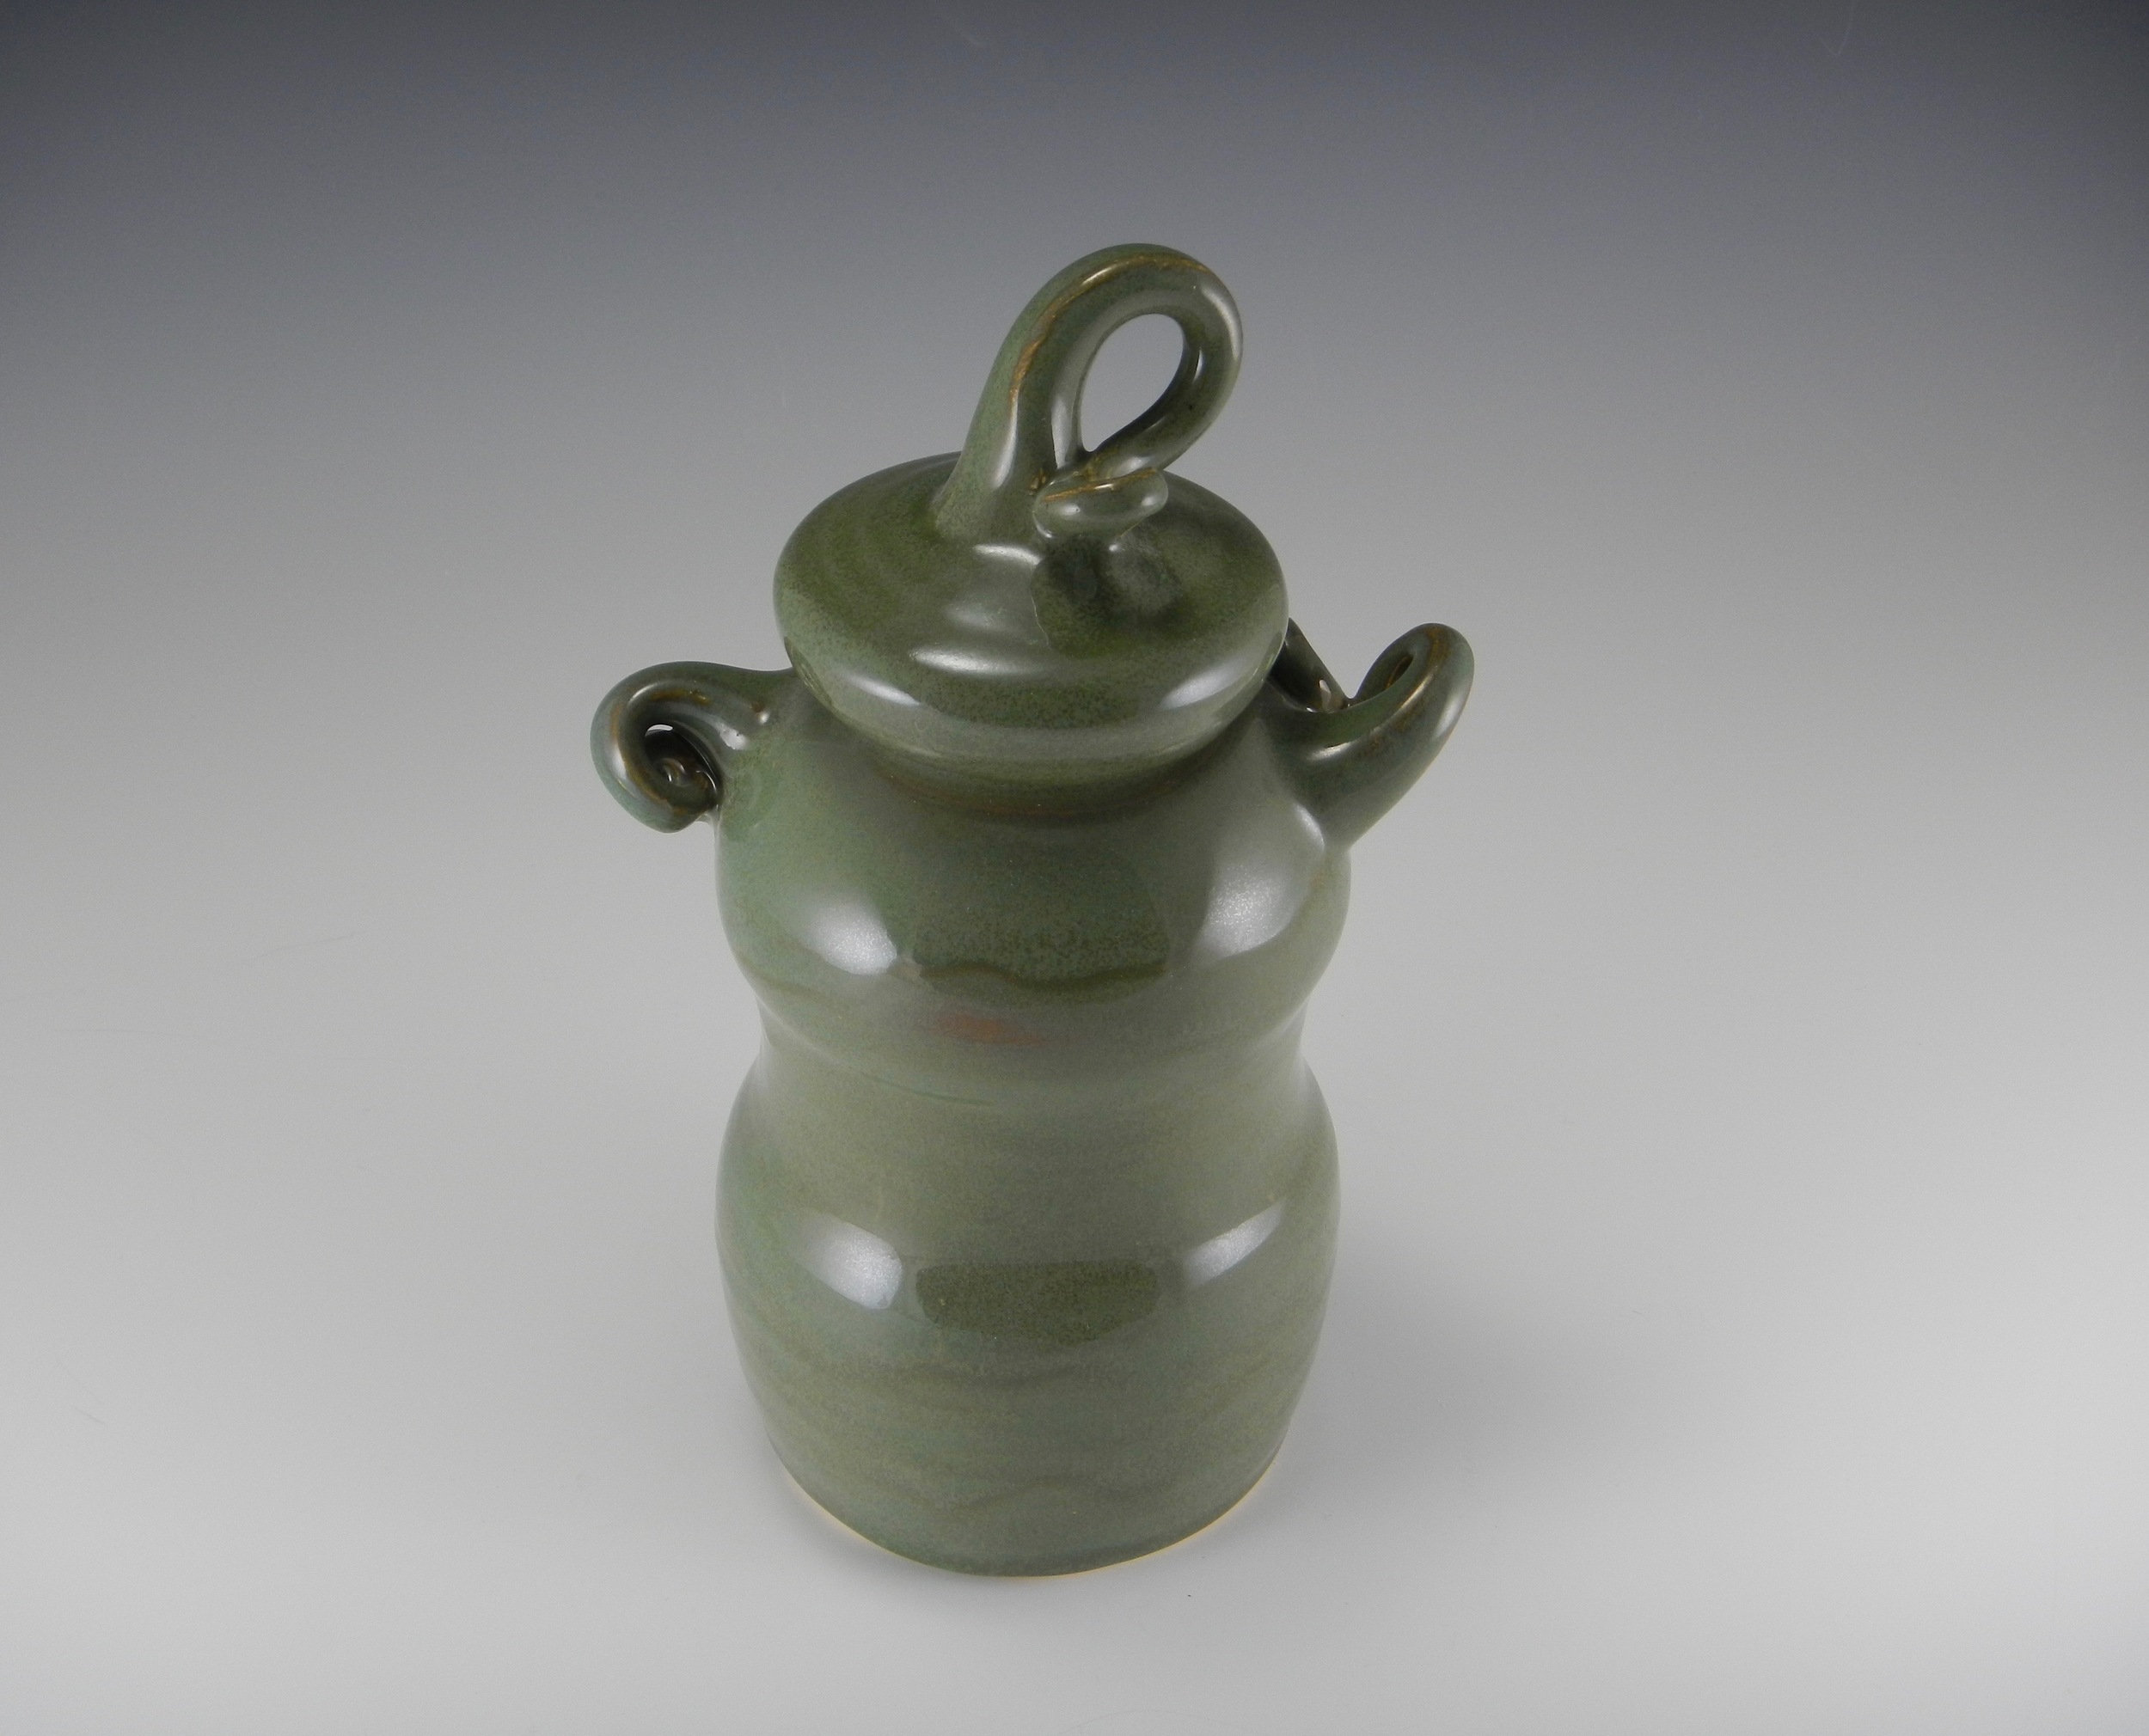 (Covered Jar with Loopy Handles, 2013, Mimi Stadler Pottery)